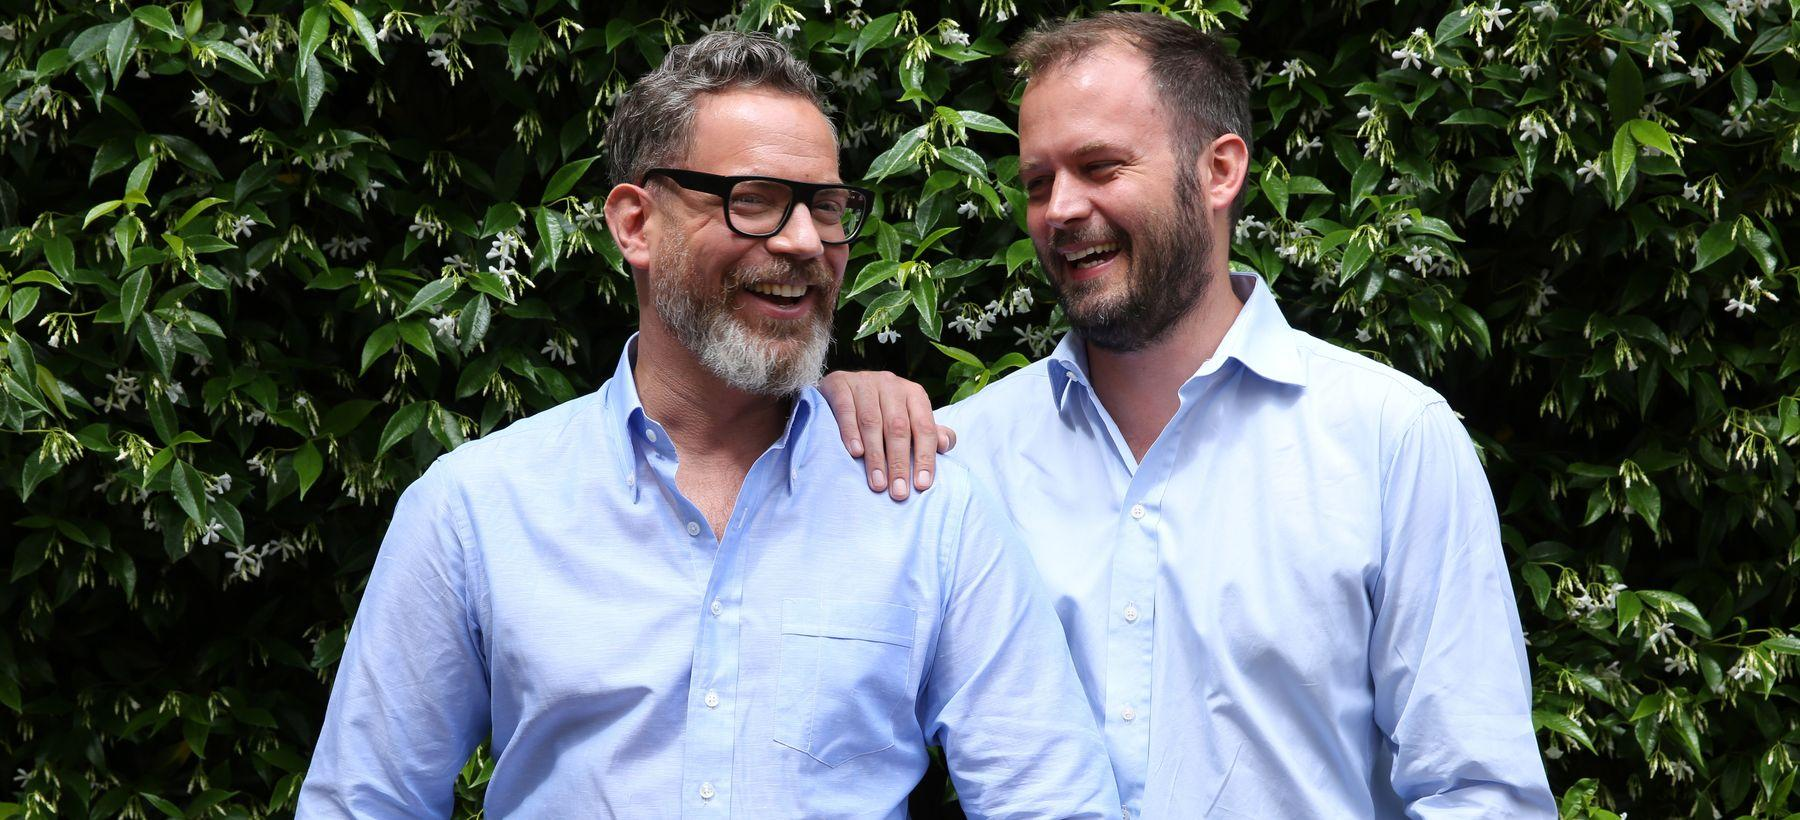 Co-Founder: Father & Son Day, 2015-now - 'Father and Son Day' was set up in 2014 by Daniel Marks and Jack Dyson, both survivors of testicular cancer, to elevate consciousness around male cancer.This June was the fifth anniversary of the campaign, which raises both money and awareness around men's cancers and encouraging an open dialogue around men's health. We had over 175k video views, and more than 1.5m engagements on social. The campaign supports the UK's first Robotic Surgery Fellowships Programme at The Royal Marsden and thanks to supporters we have managed to train three Robotic Fellows over the past five years.